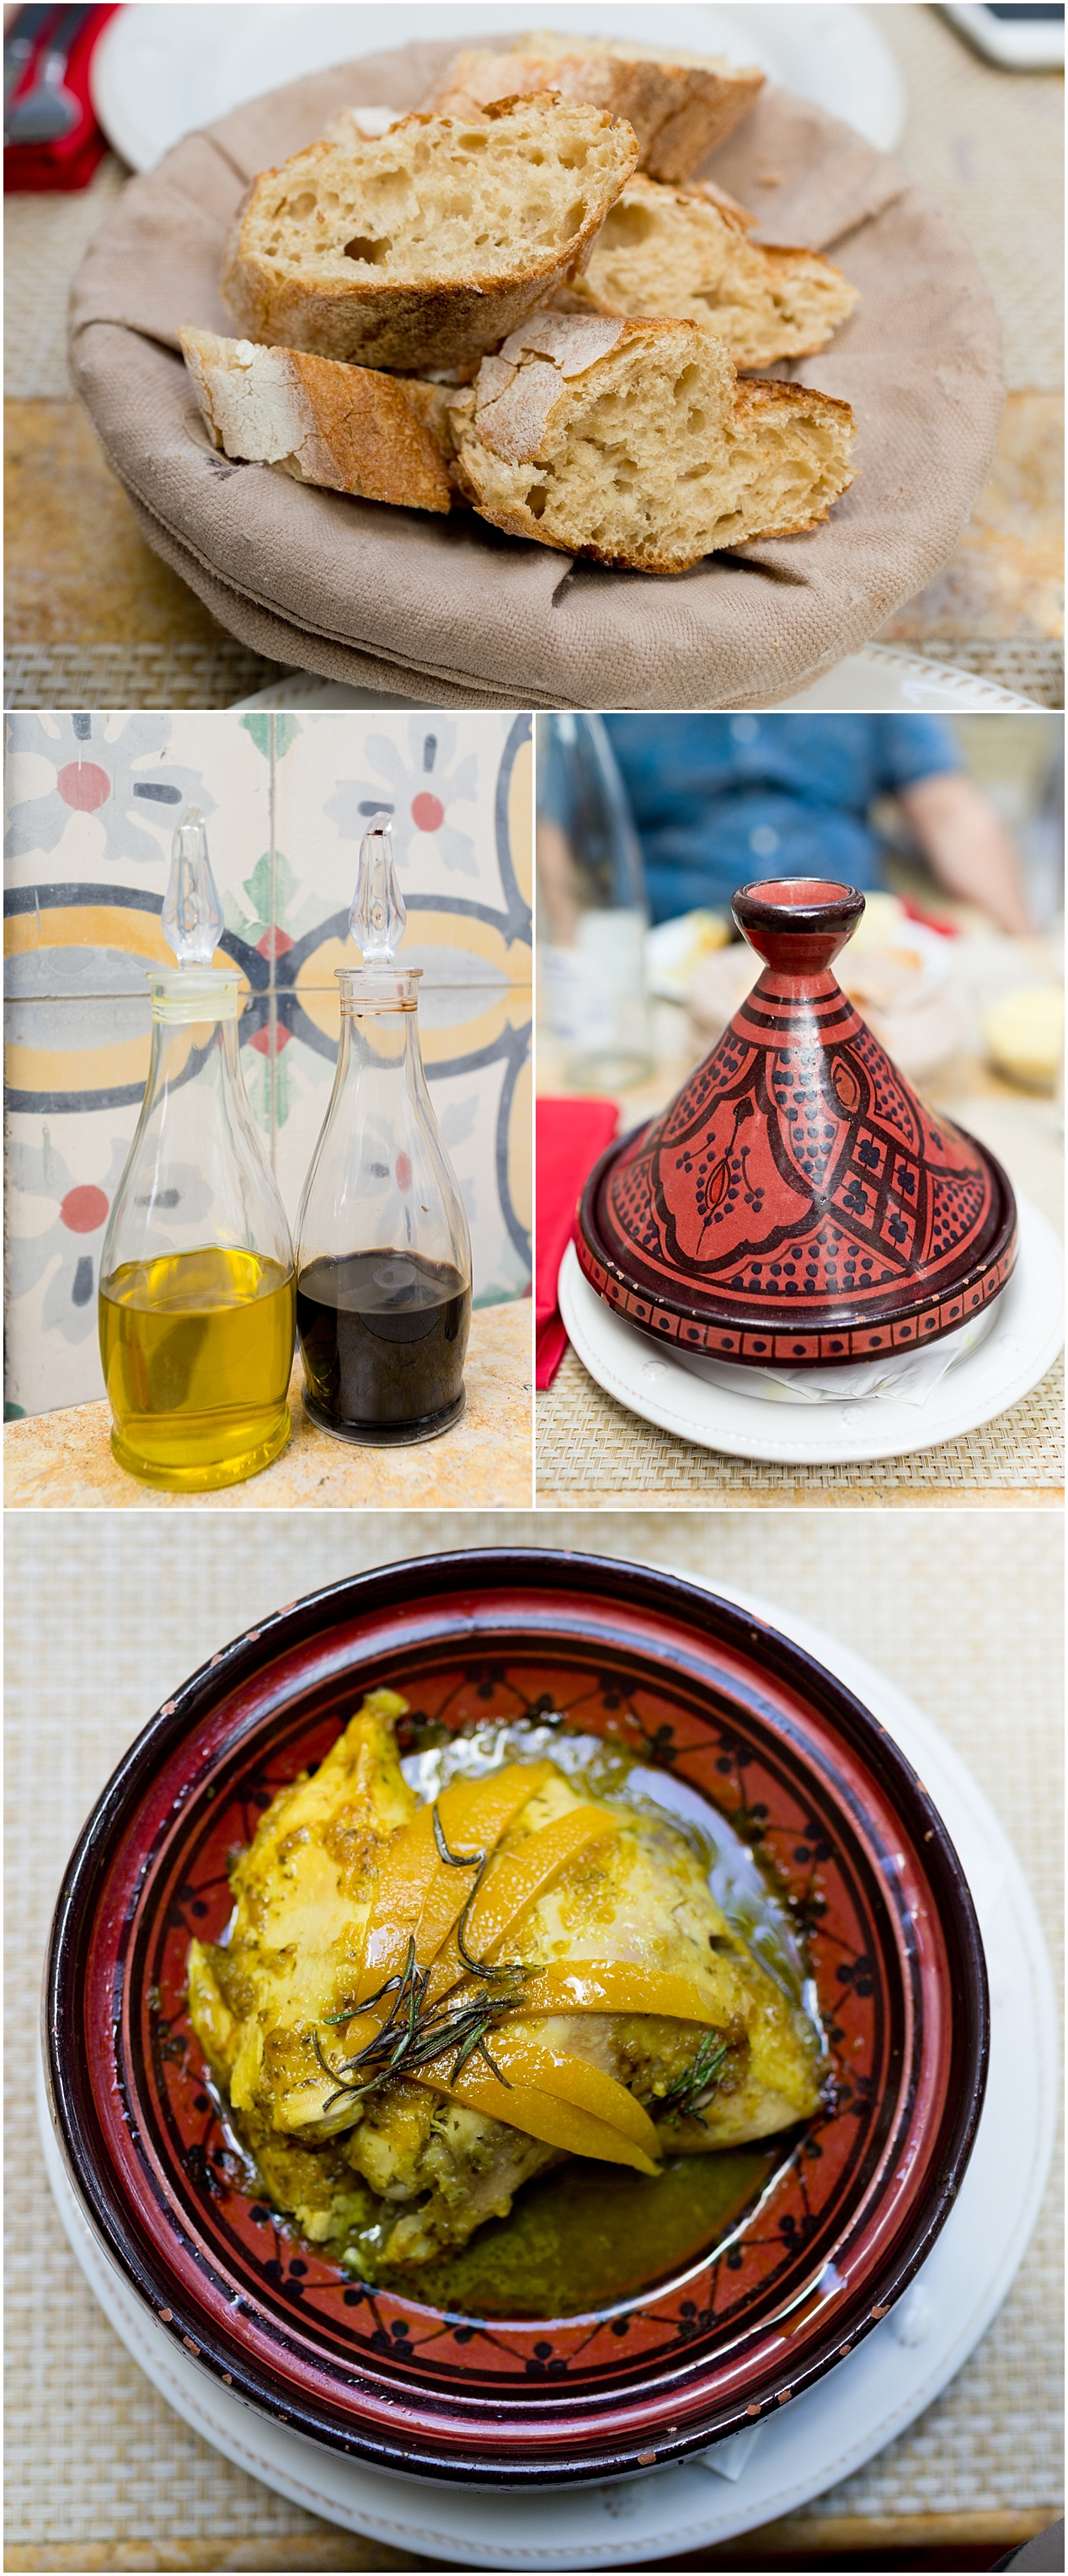 Marrakech restaurant review: Limoni (bread and tagine food)